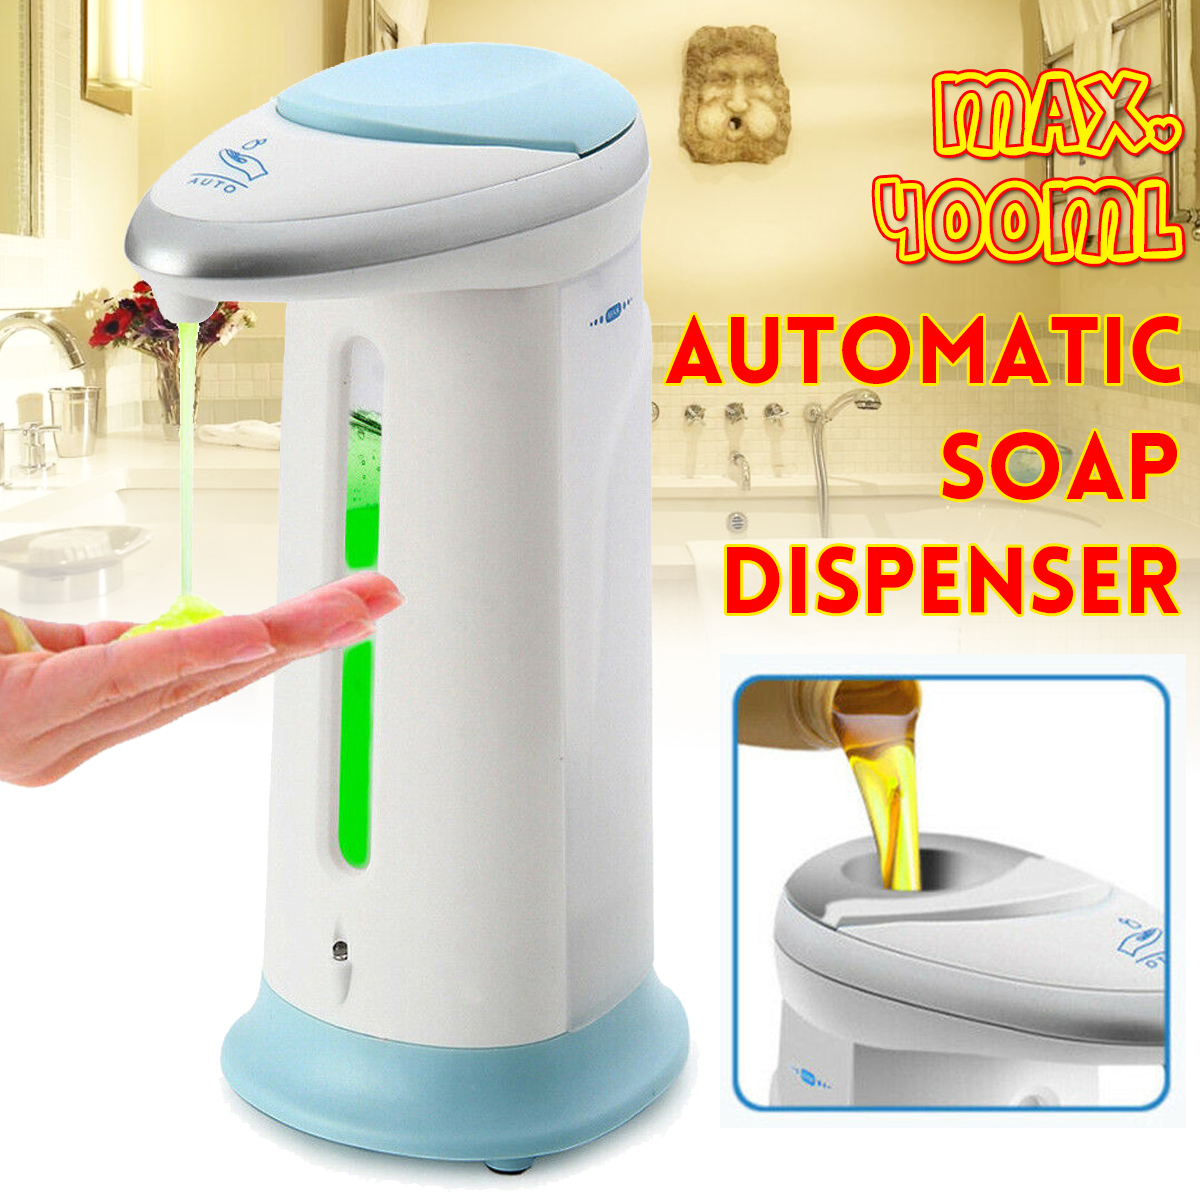 Automatic IR Sensor Handsfree Soap Dispenser 2